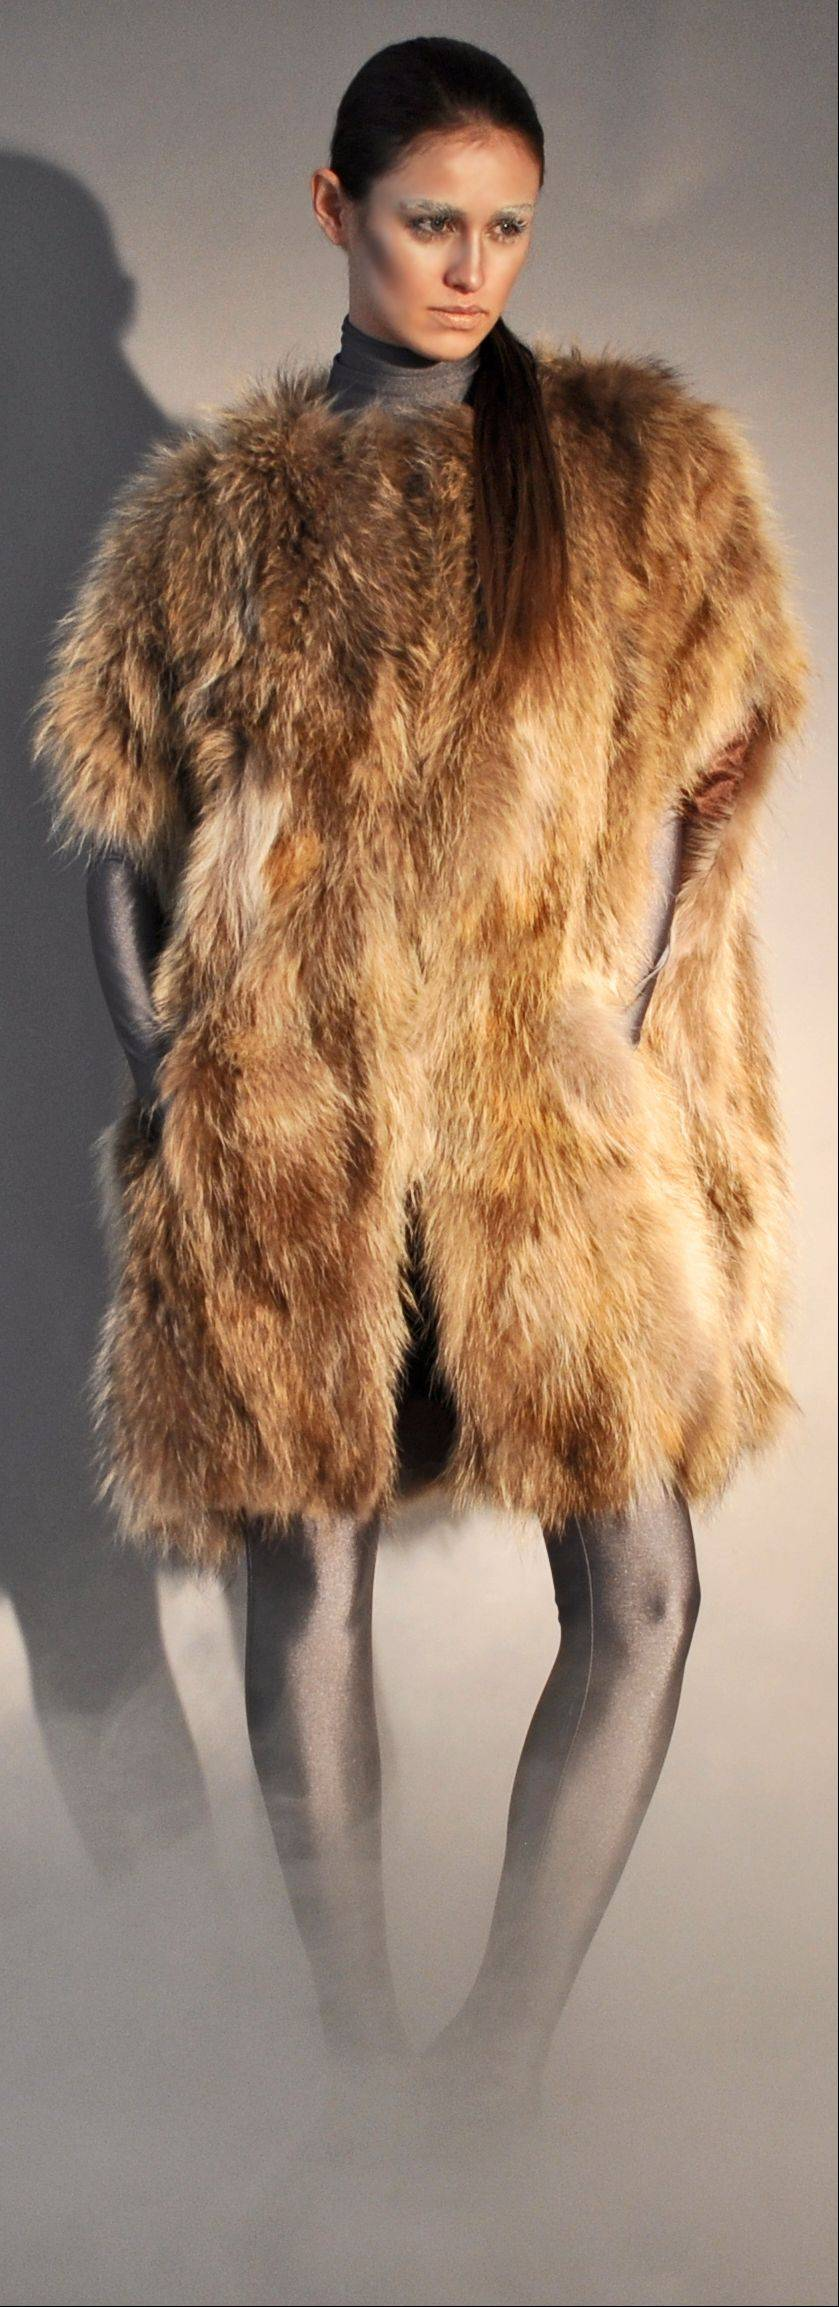 A raccoon fur �kimono vest, part of Adrienne Landau's fall 2011 collection.